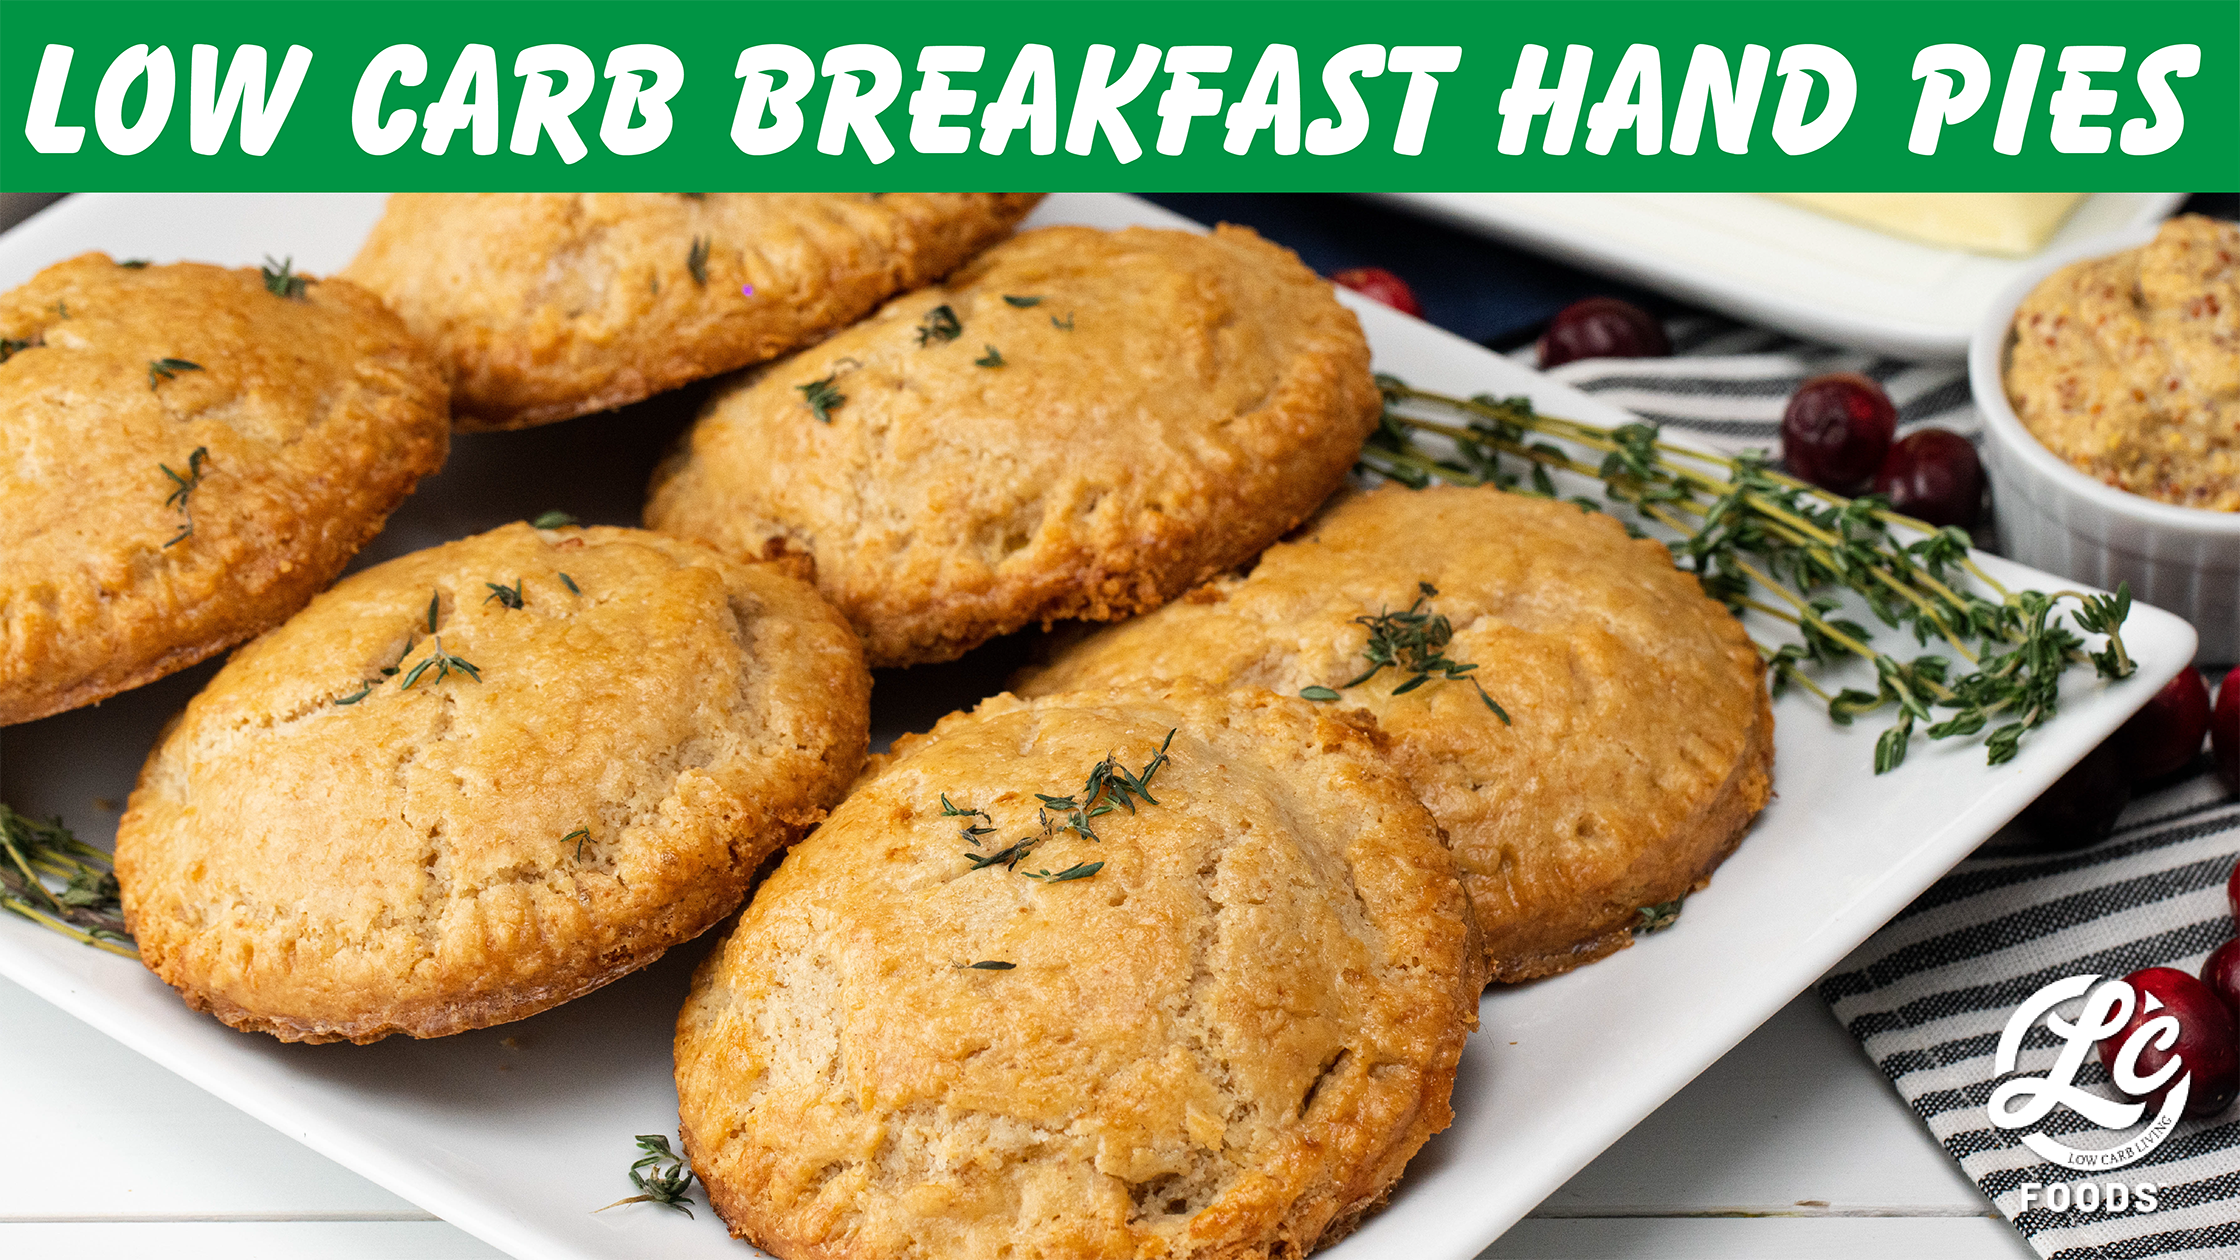 Thumbnail for Low Carb Breakfast Hand Pies